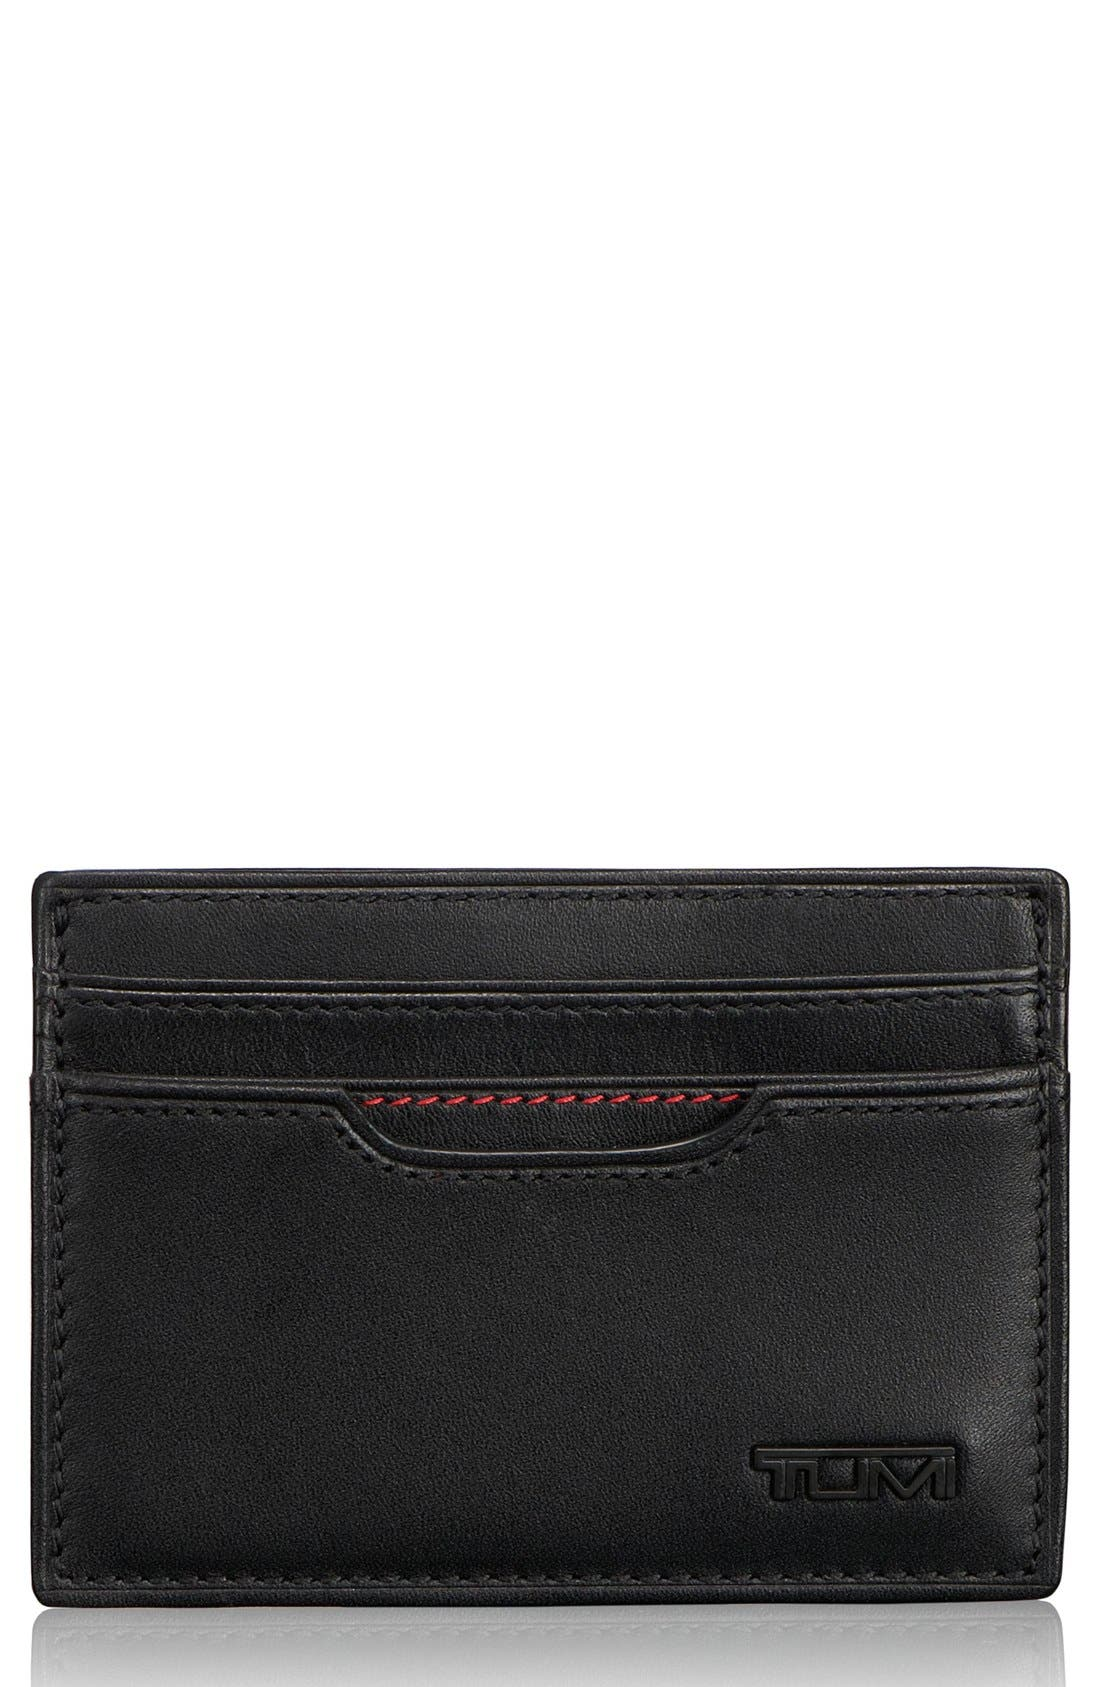 Tumi 'Delta - ID Lock™' Shielded Money Clip Card Case